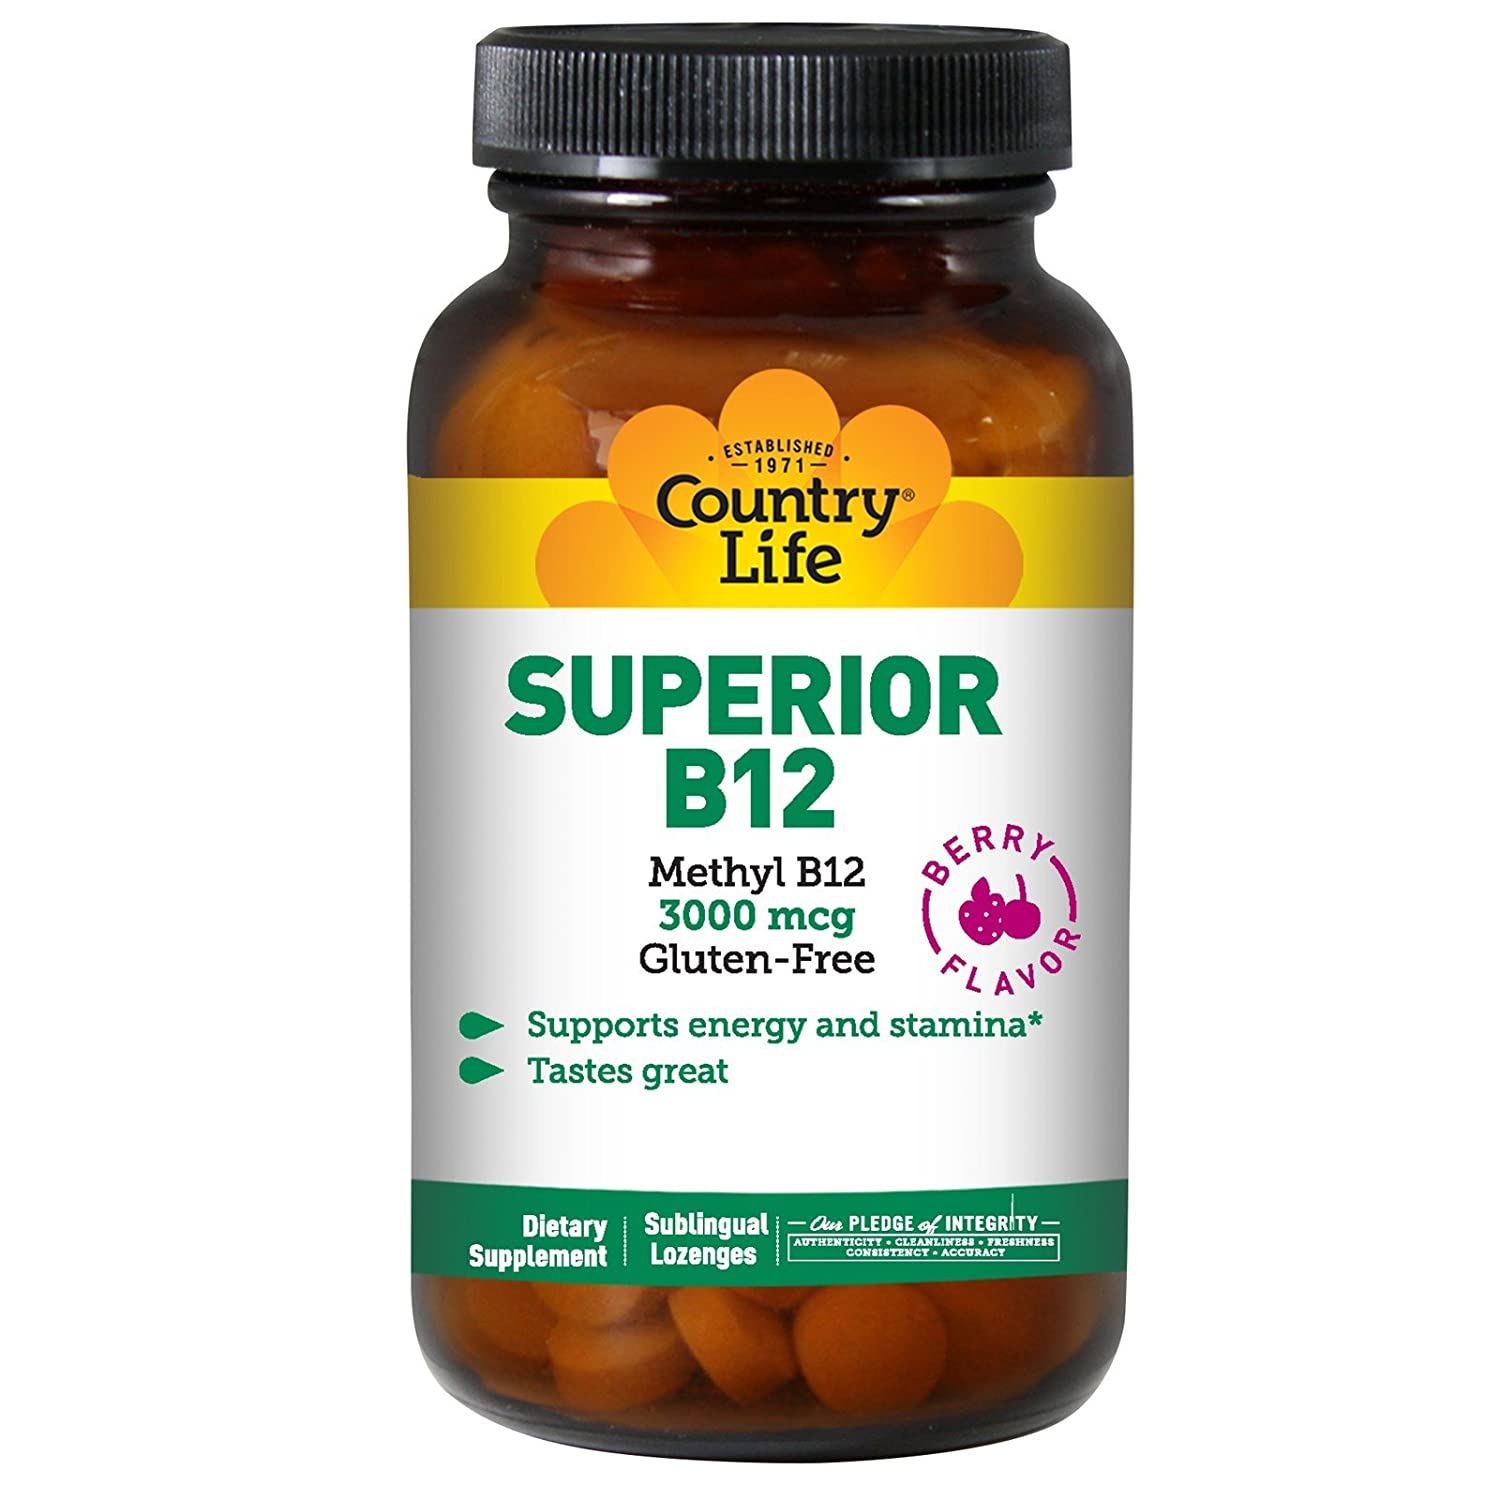 Country Life Superior B12-120 Sublingual Lozenges – 3000 mcg – Methyl B12 – Supports Energy and Stamina -Tastes Great